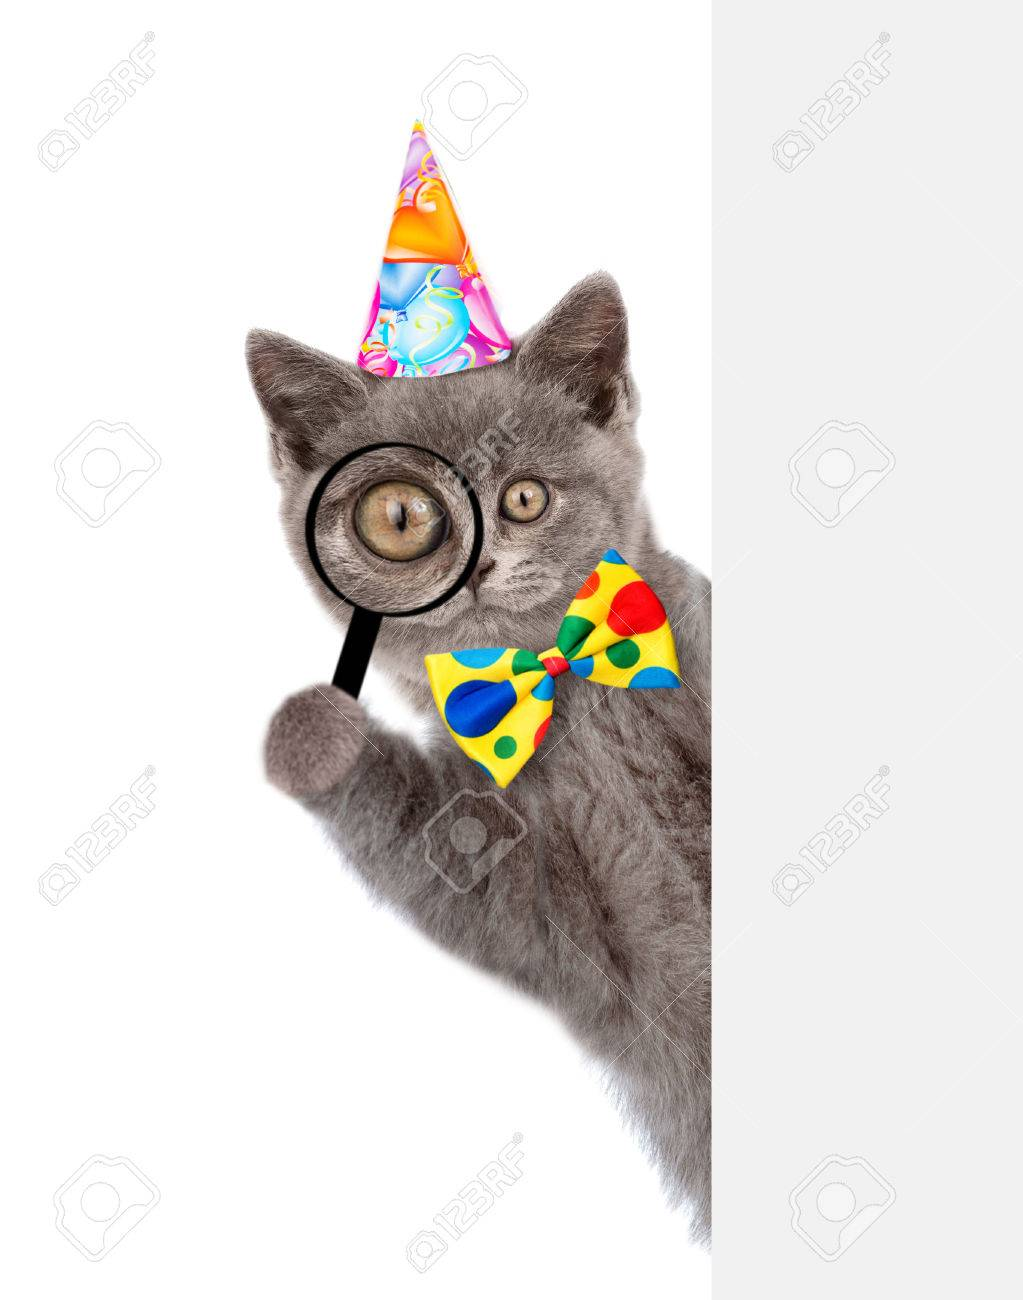 49f202da Funny cat in birthday hat looks thru a magnifying lens. Isolated on white  background.